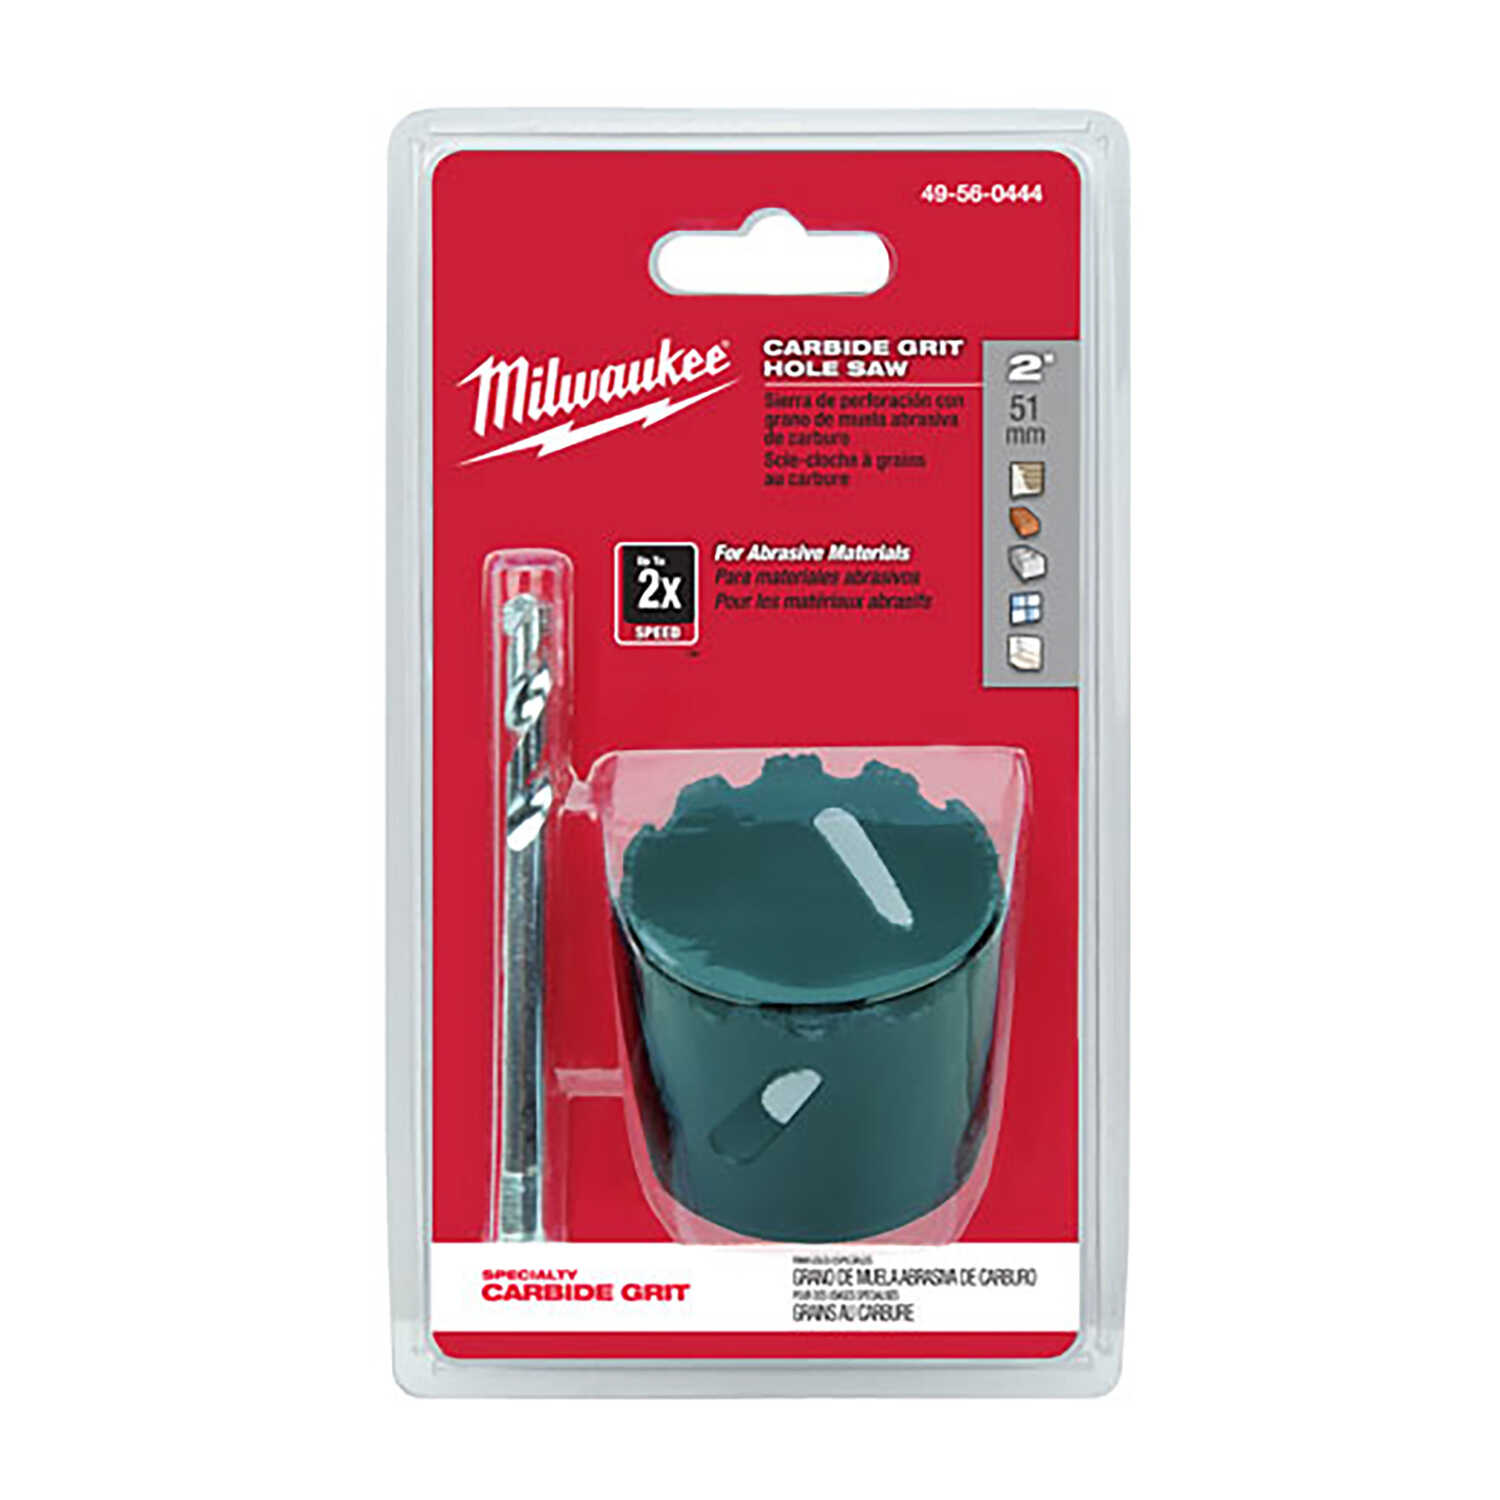 Milwaukee  2 in. Dia. x 1.8 in. L Tungsten Carbide Grit  Hole Saw  1/4 in. 2 pc.